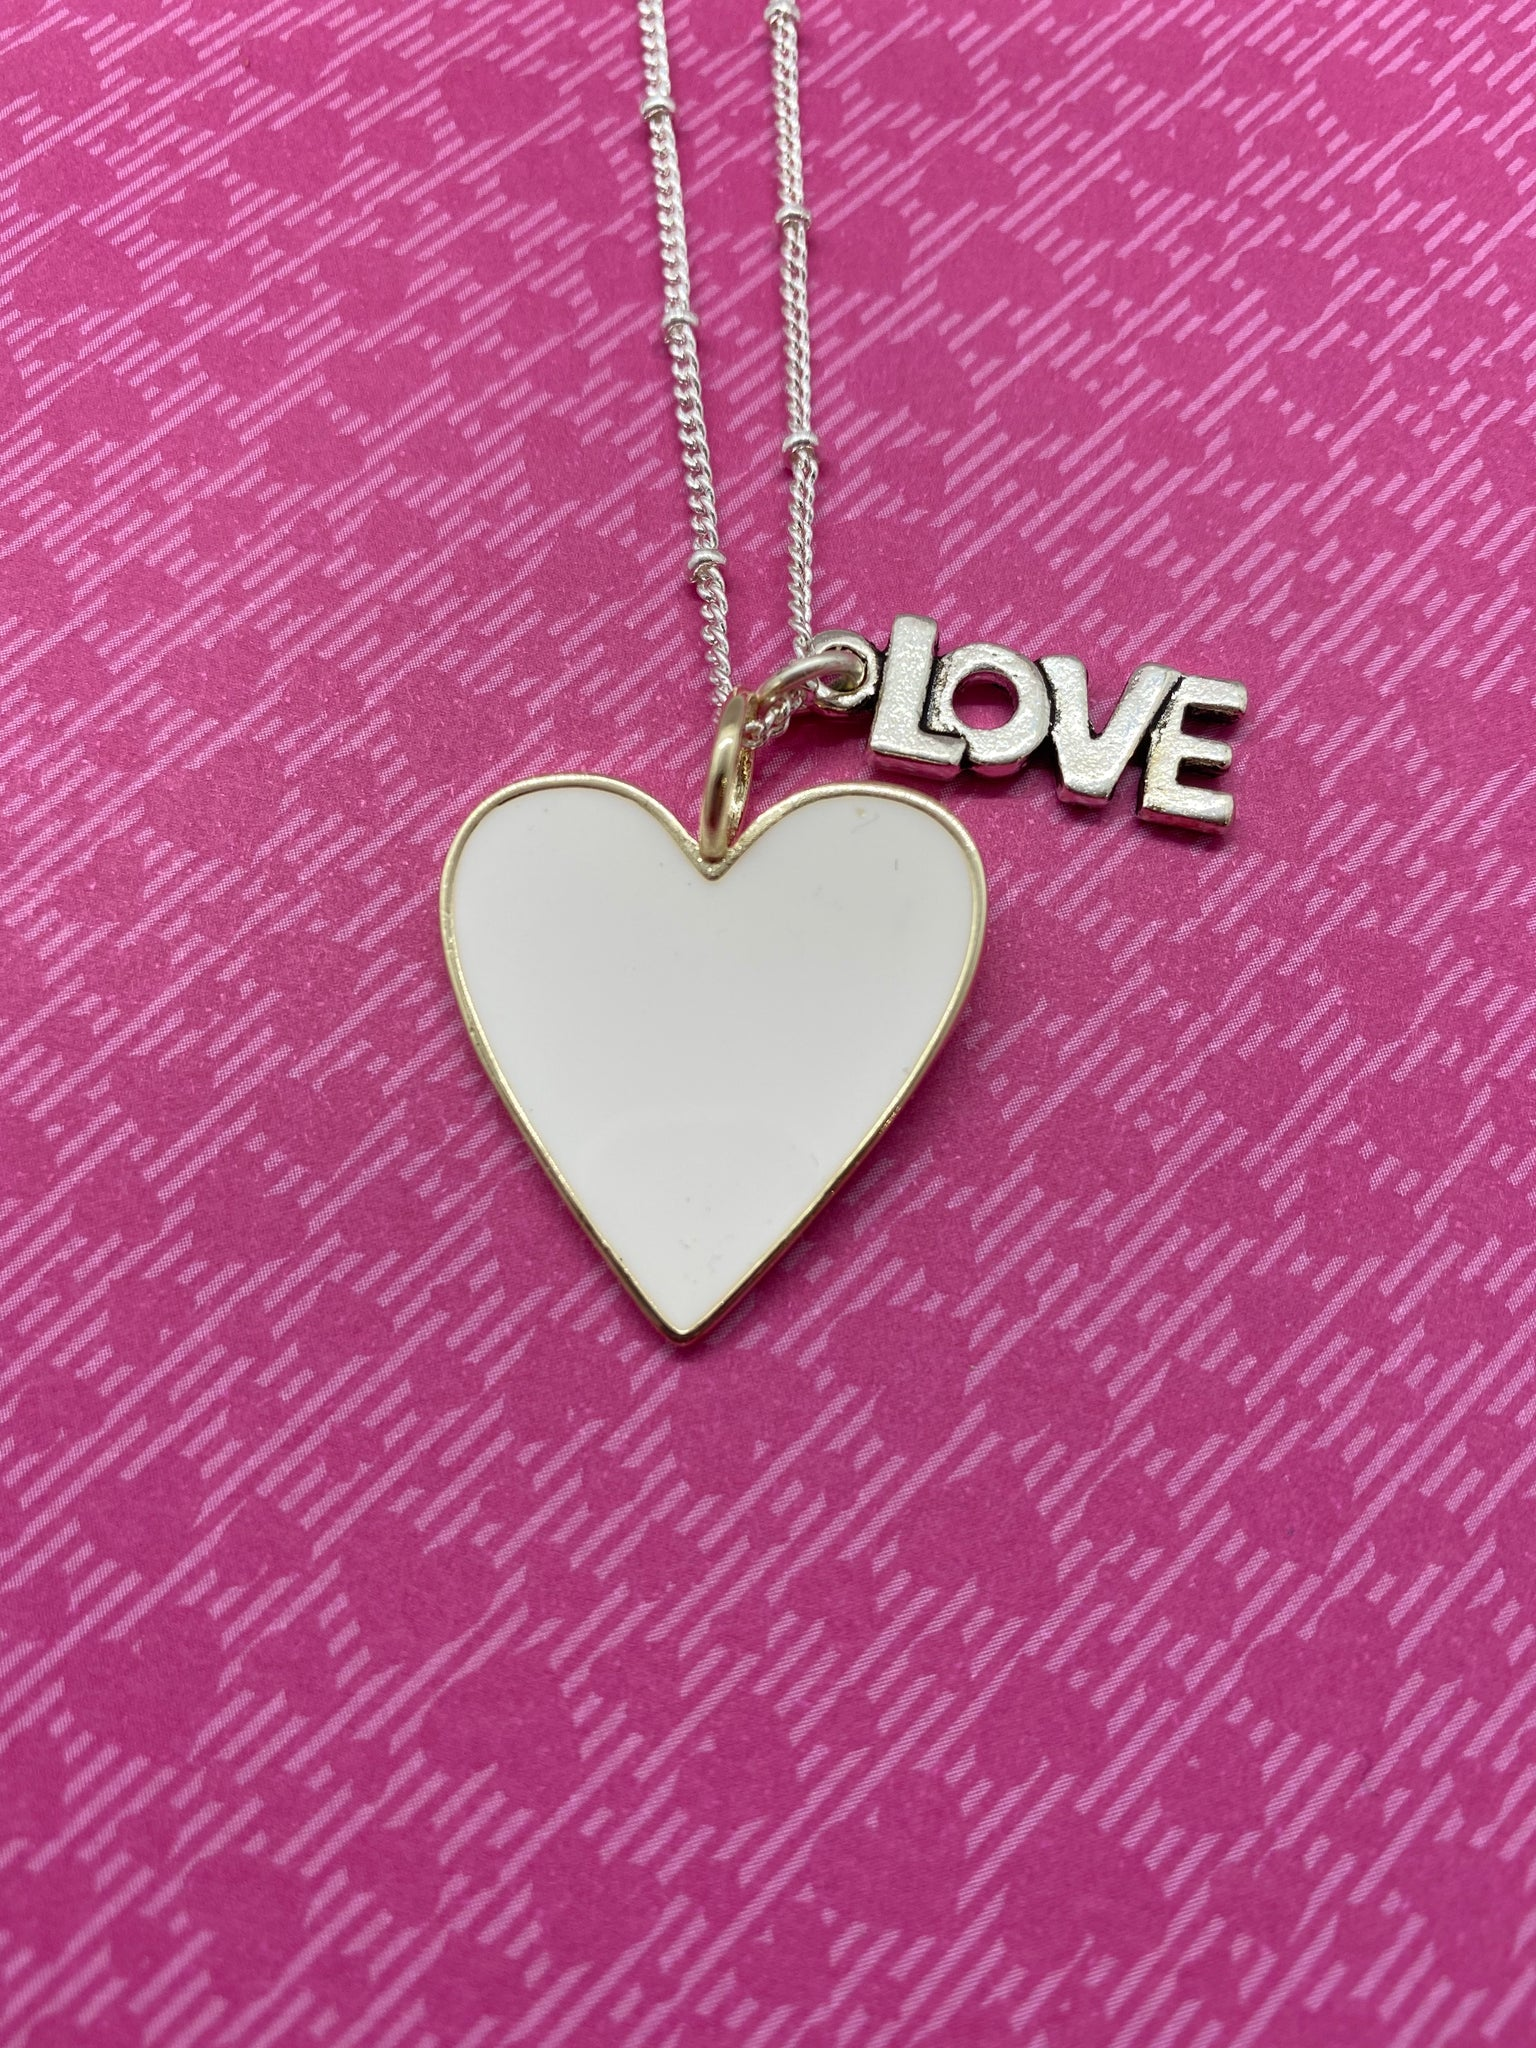 White Enamel Heart Necklace with LOVE Charm